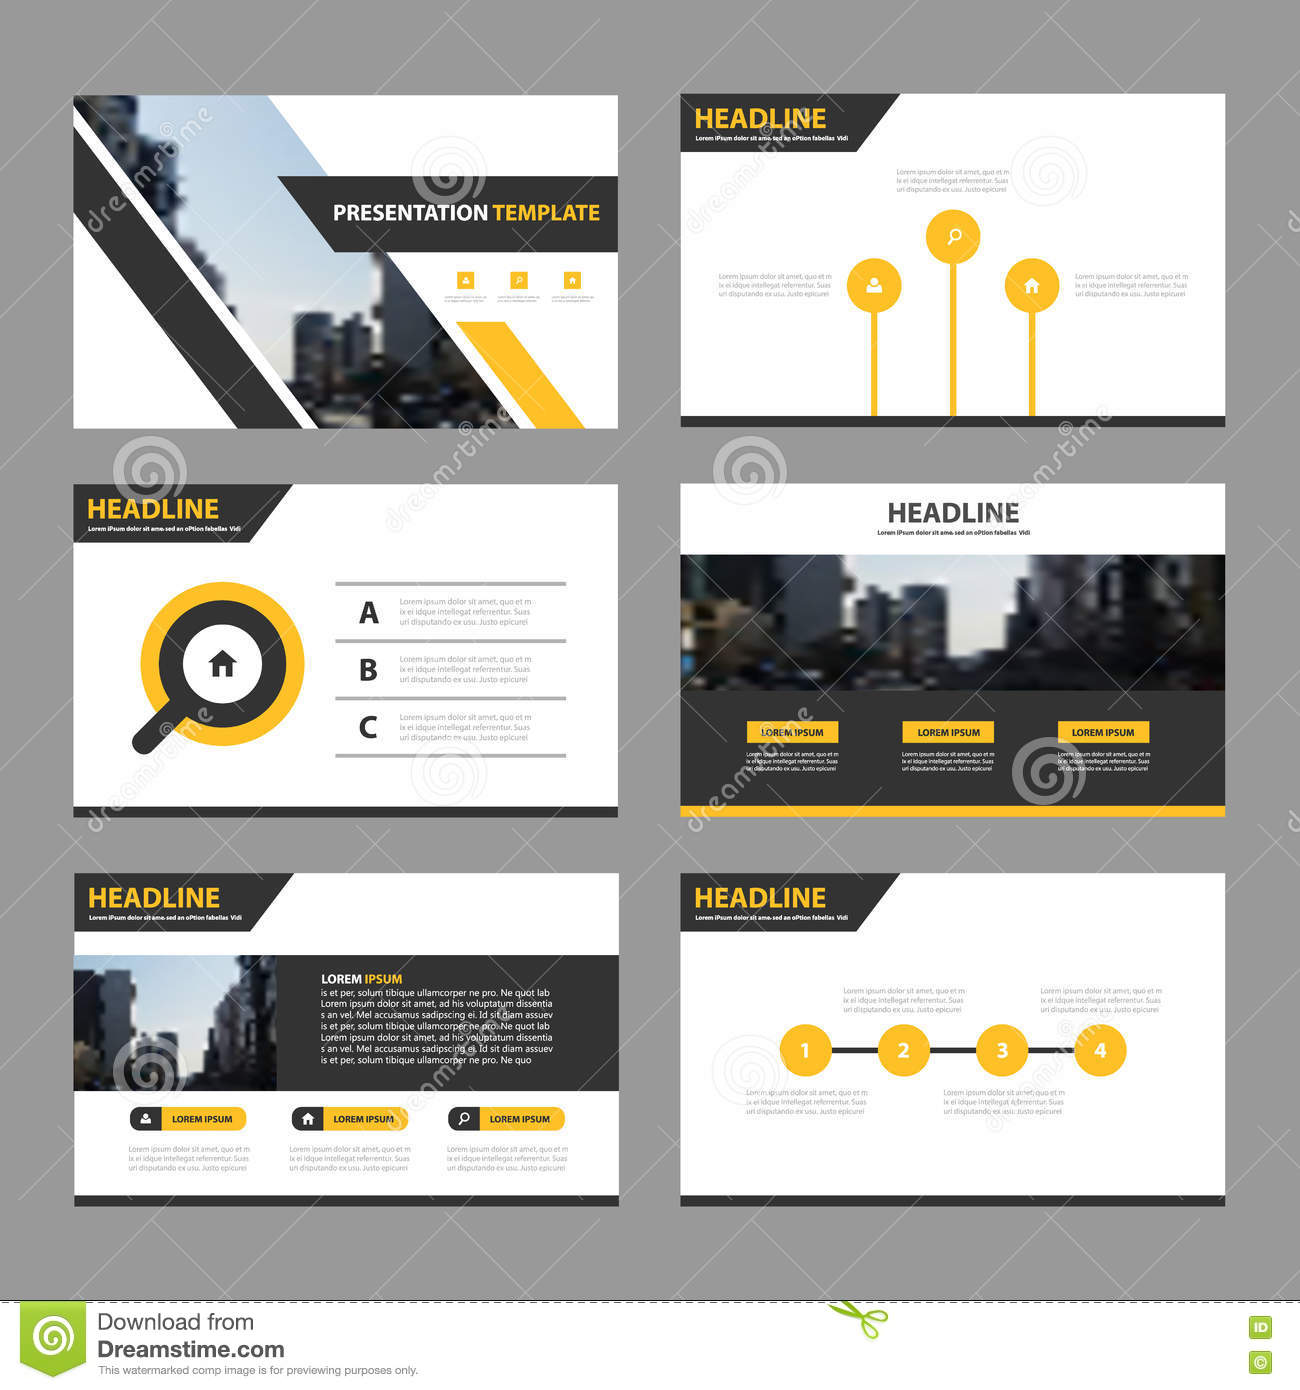 yellow black abstract presentation templates infographic elements template flat design set for annual report brochure flyer